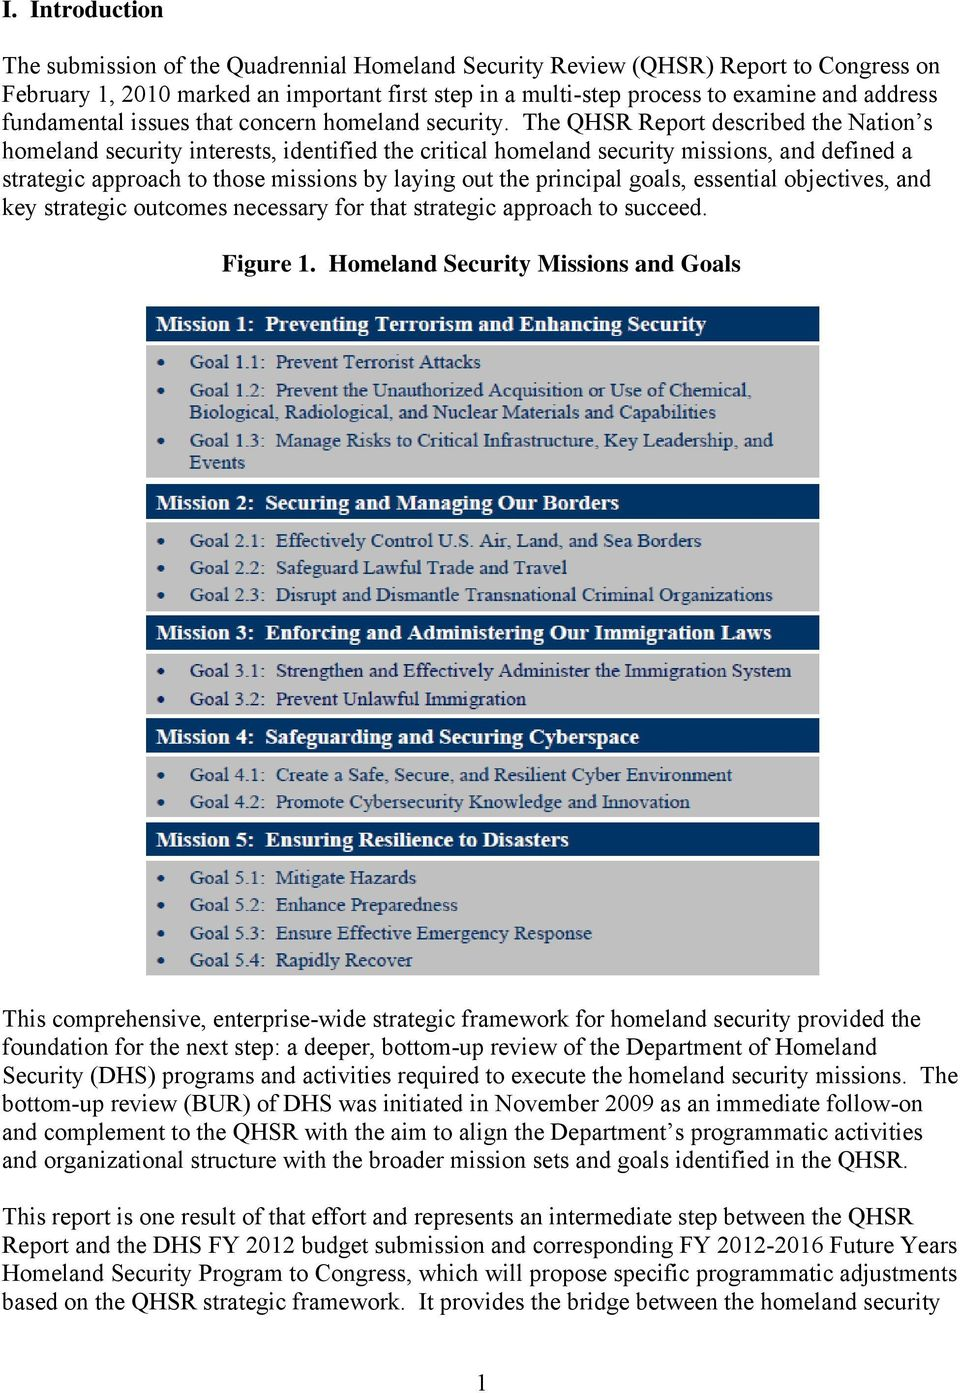 The QHSR Report described the Nation s homeland security interests, identified the critical homeland security missions, and defined a strategic approach to those missions by laying out the principal